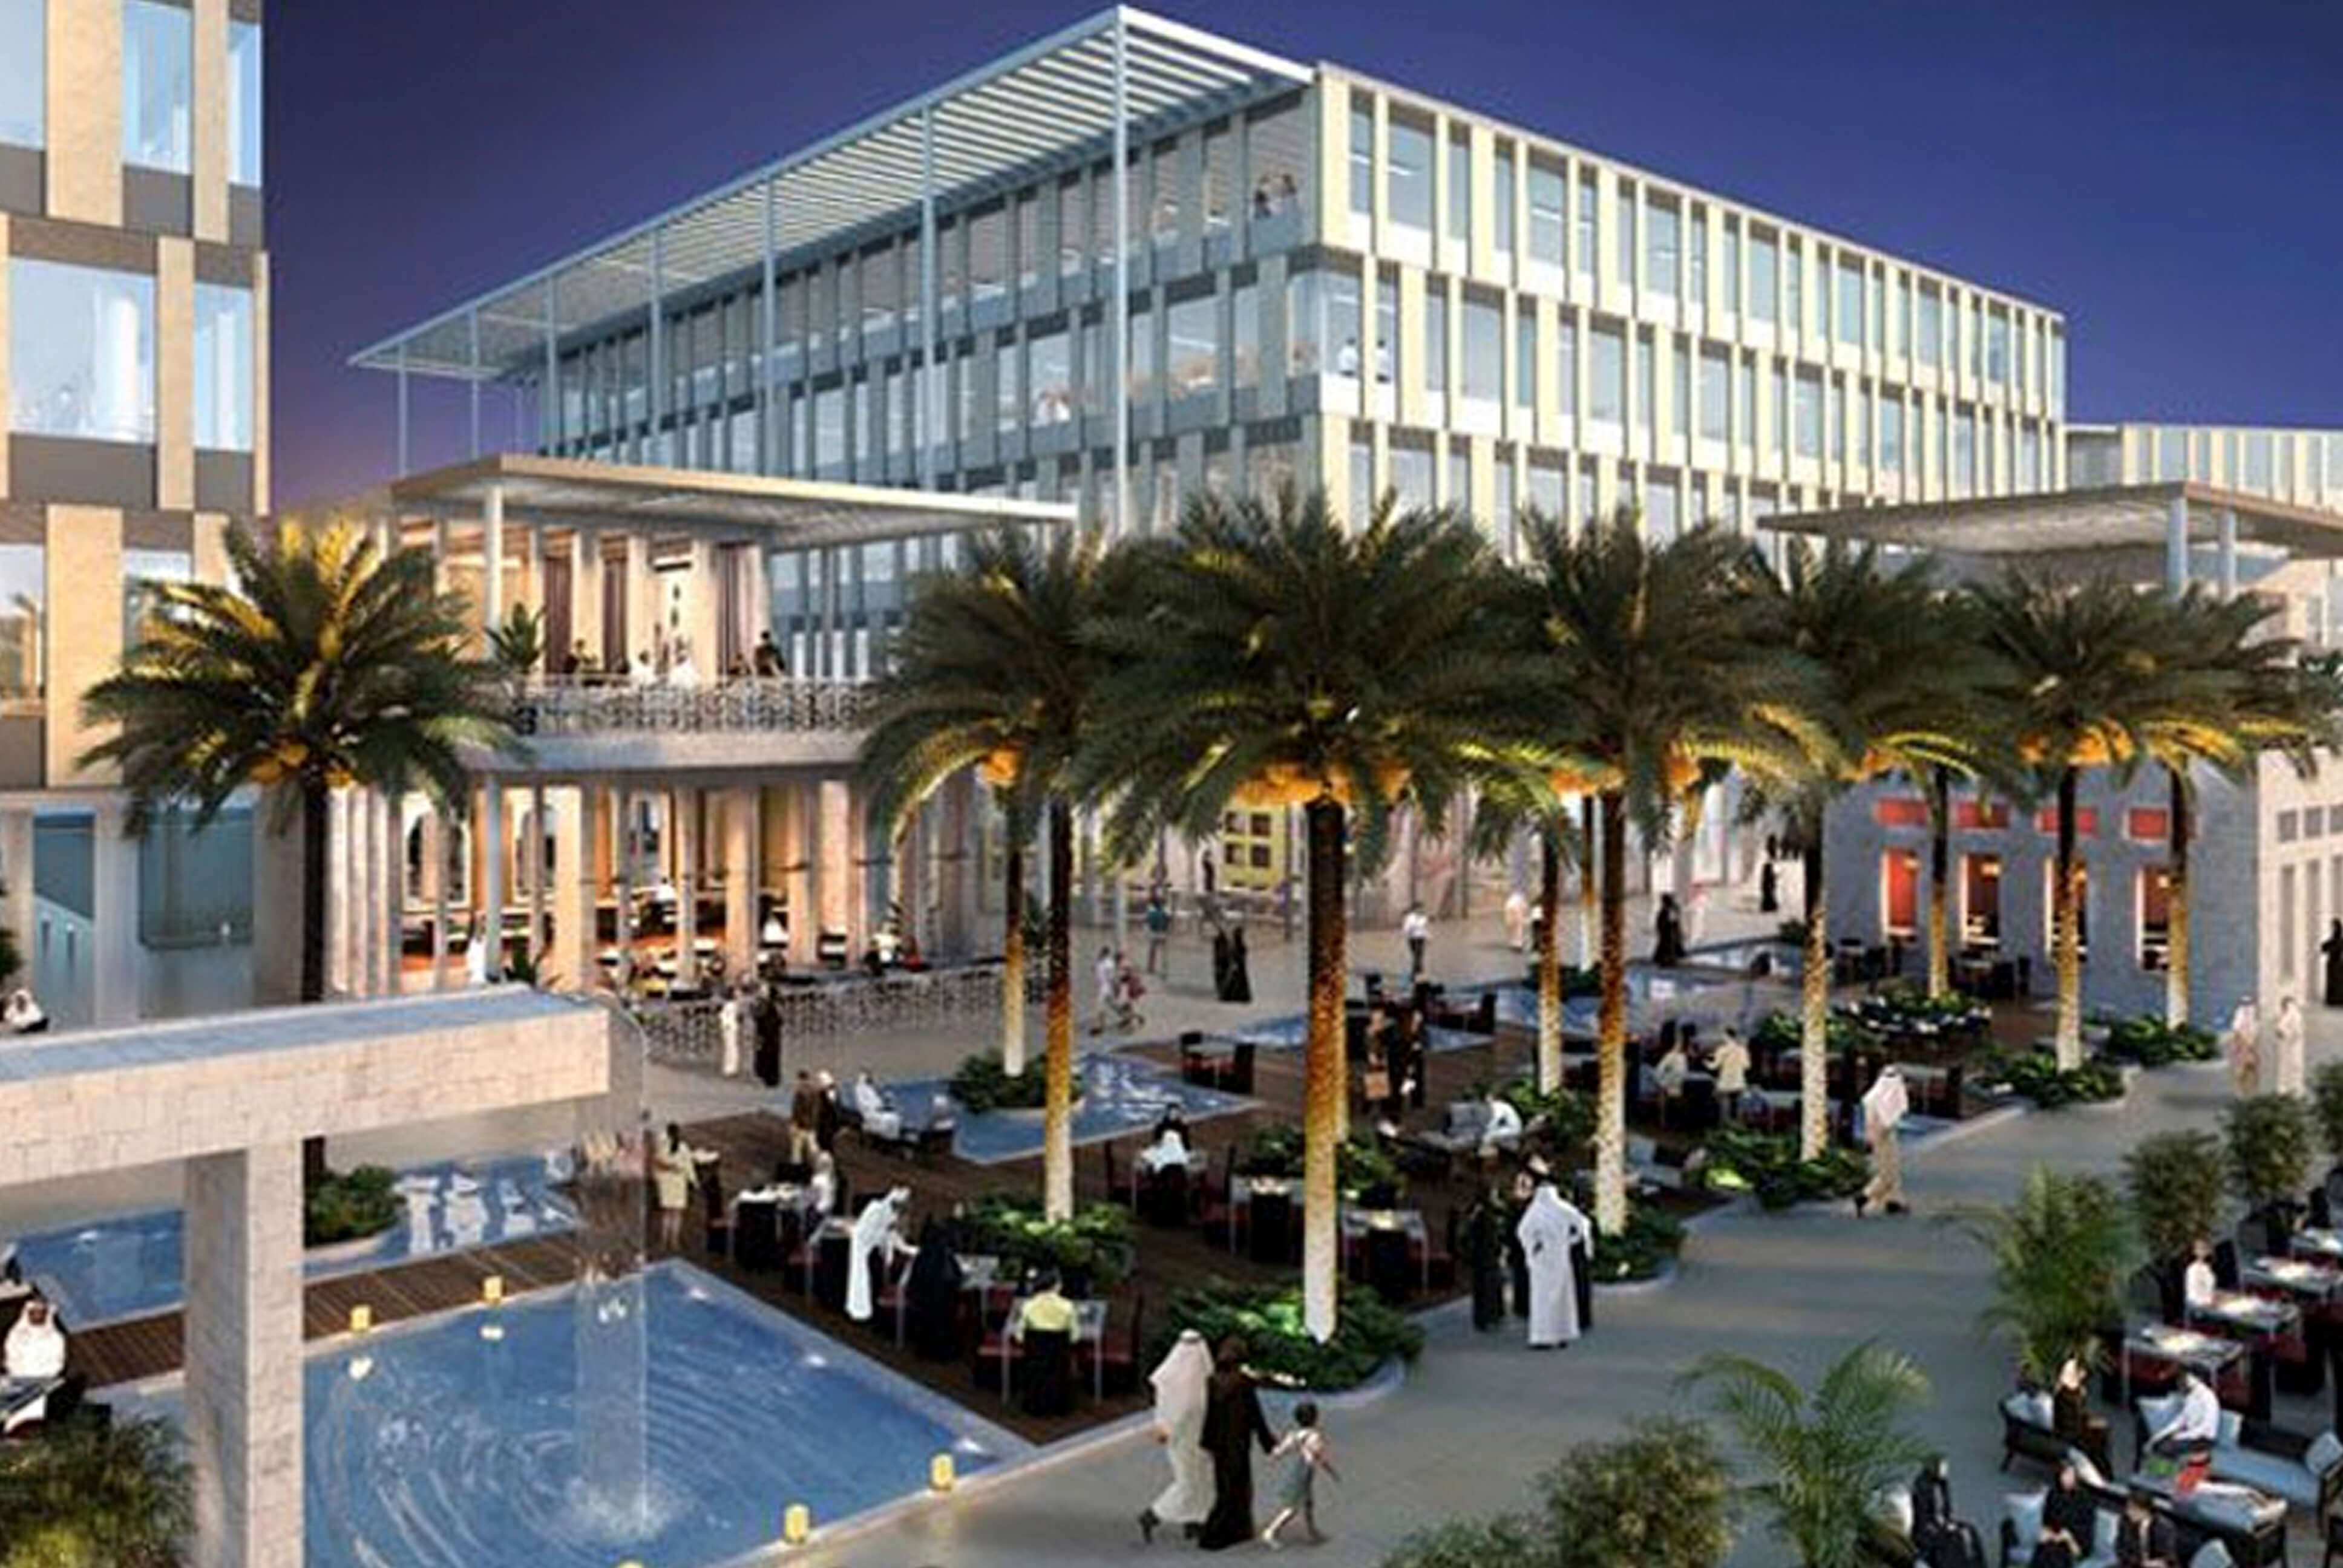 Northgate Mall Qatar